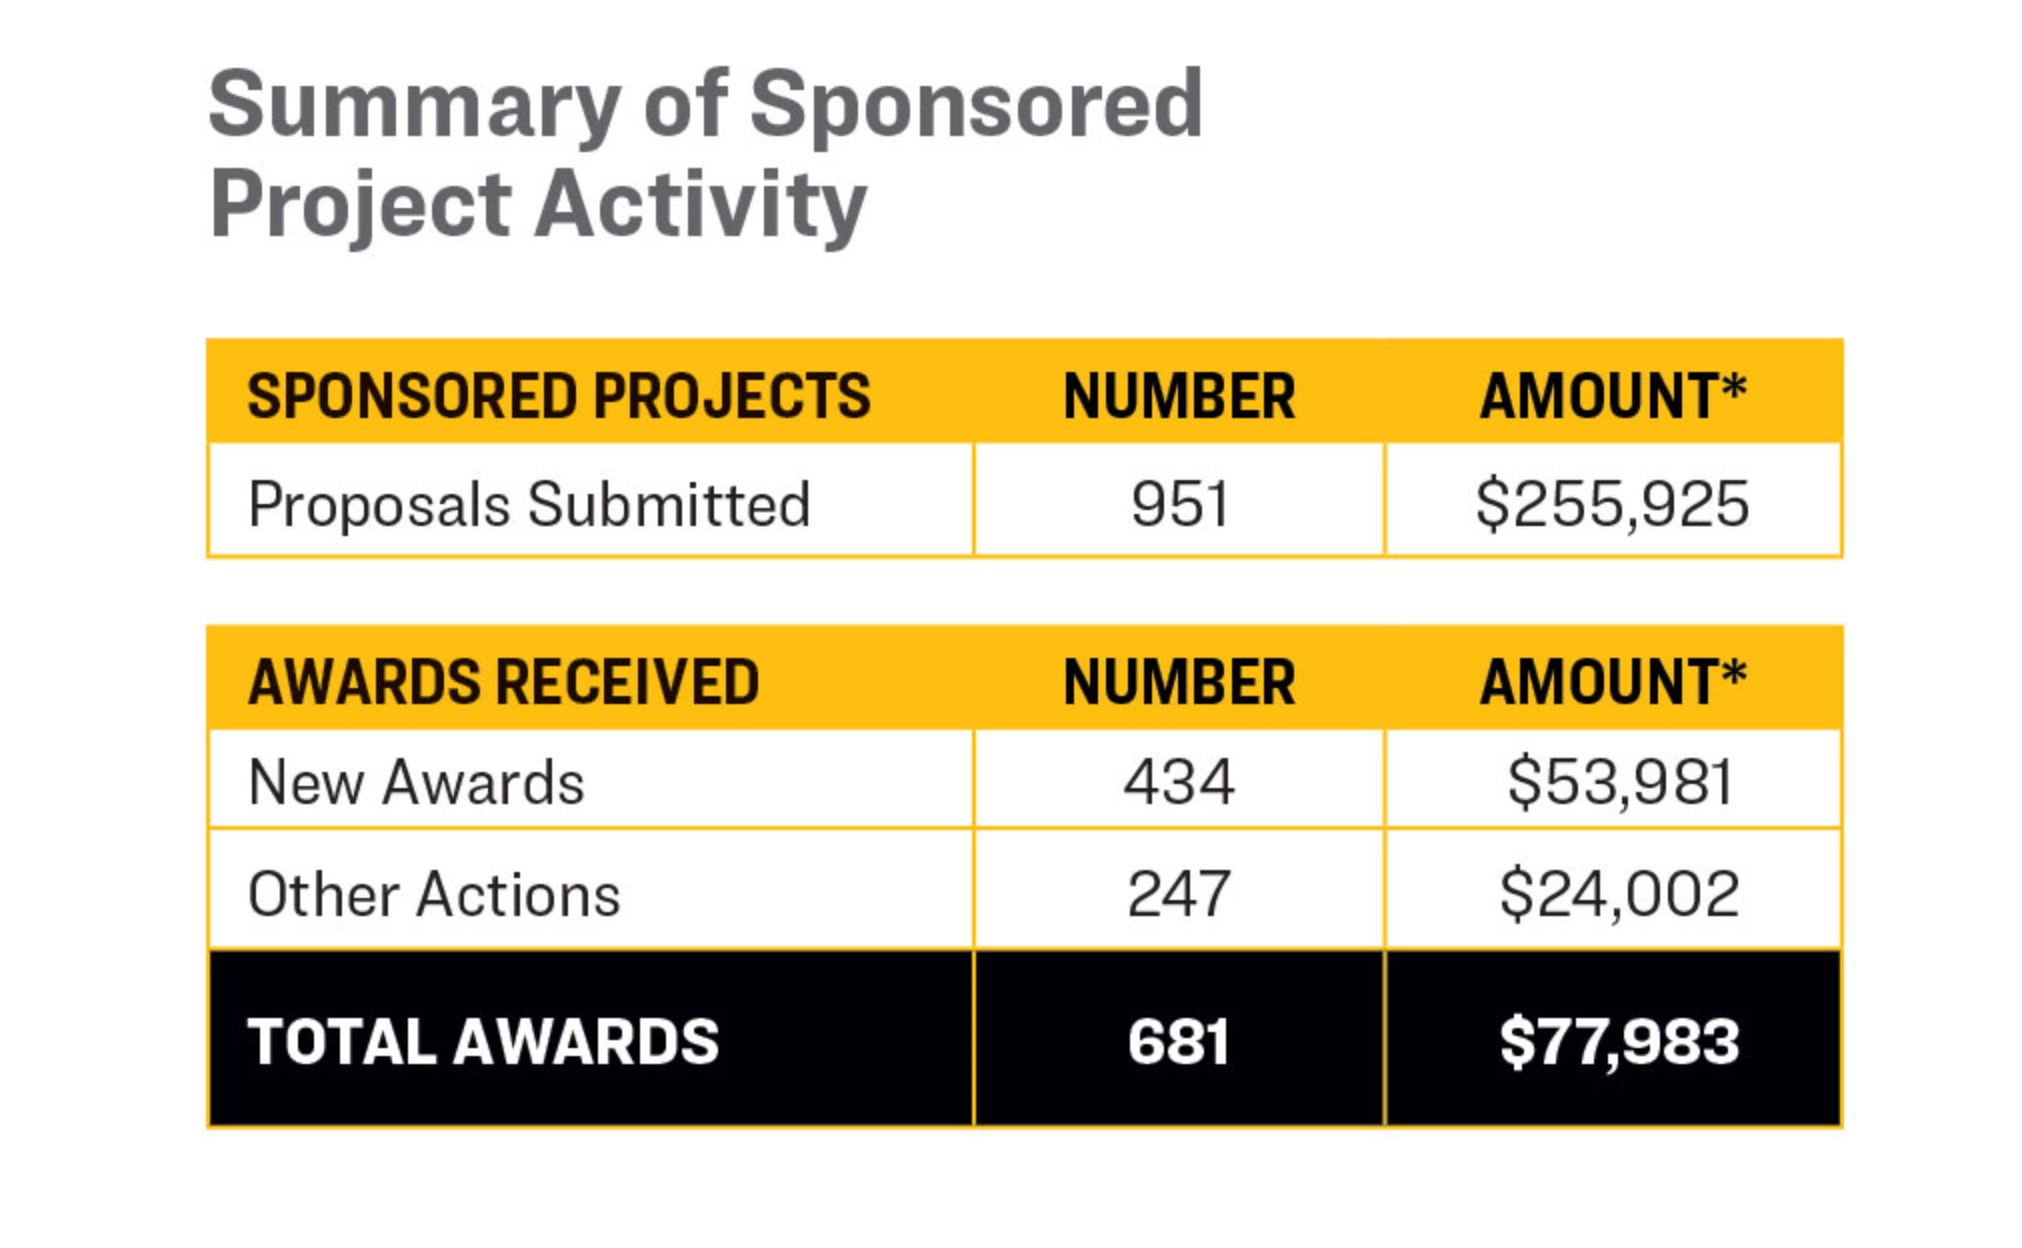 "A table representing a Summary of Sponsored Project Activity for the 2018 fiscal year. A total 951 proposals amounting to $255,925 were submitted, resulting in 434 ""New Awards"" amounting to $53,981 and 247 ""Other Actions"" equaling $24,002. Bringing the total awards to 681 and an amount of $77,983."